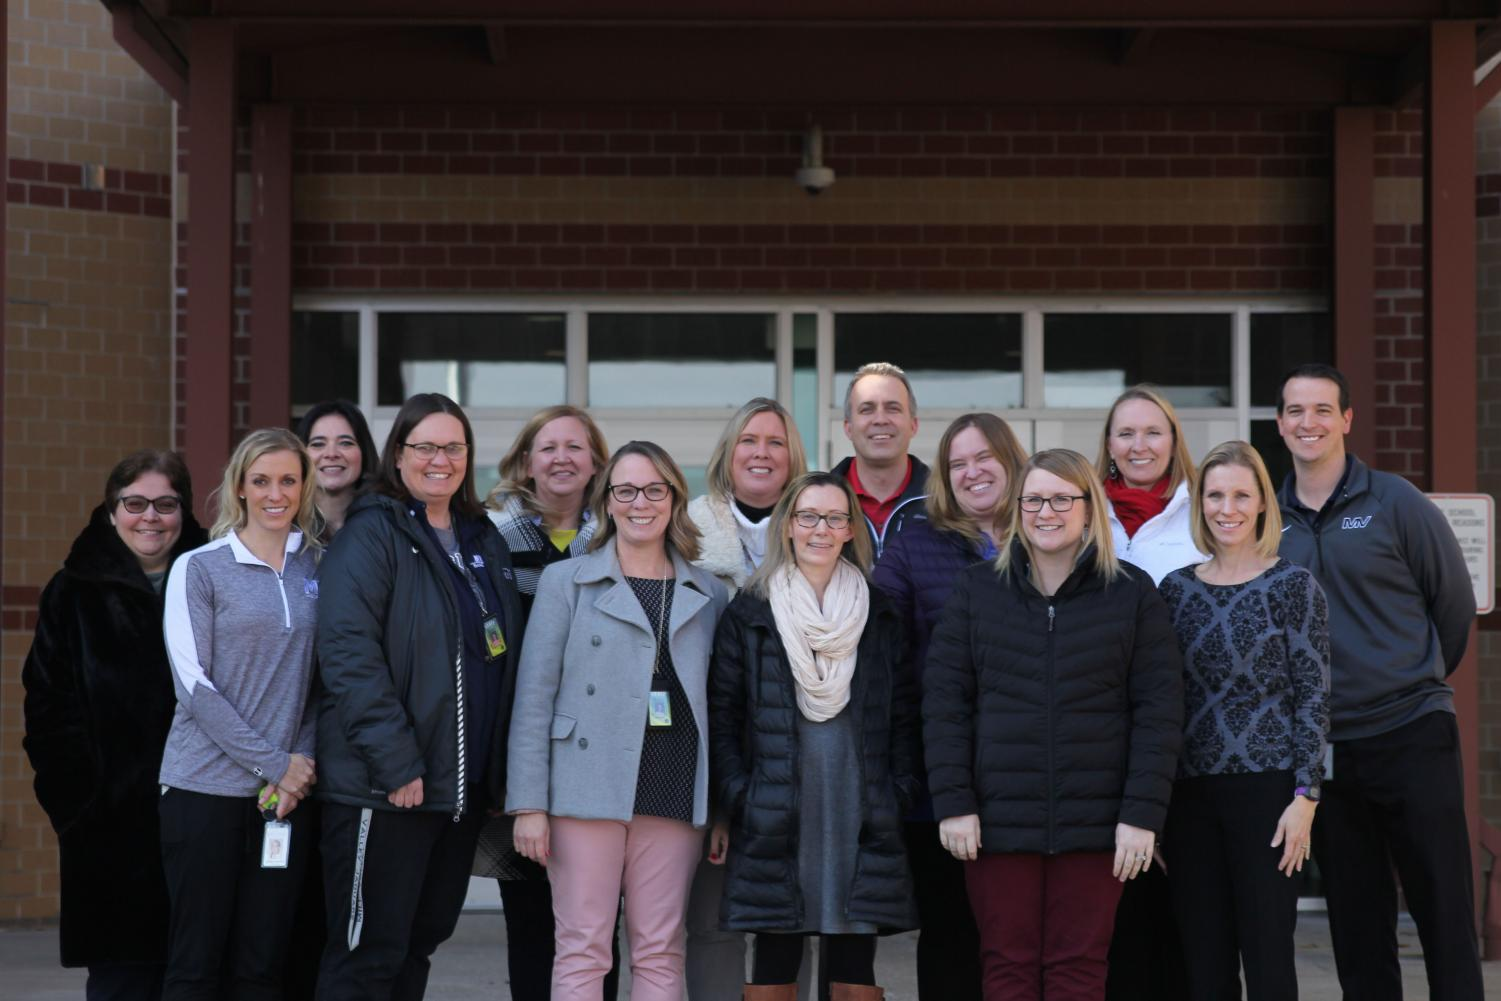 Members of the Executive Leadership team from left to right. Top: Helga Brown, Dorothy Swafford, Trish Chandler, Sara Evans, Jeff Wieland, Sara Sedgwick, Amy Welzenbach, Chris Wallace. Front: Jessica DeWild, Deb Steiner, Erin Hayes, Elizabeth Molgren, Emily Schmidt, Jill Lloyd.